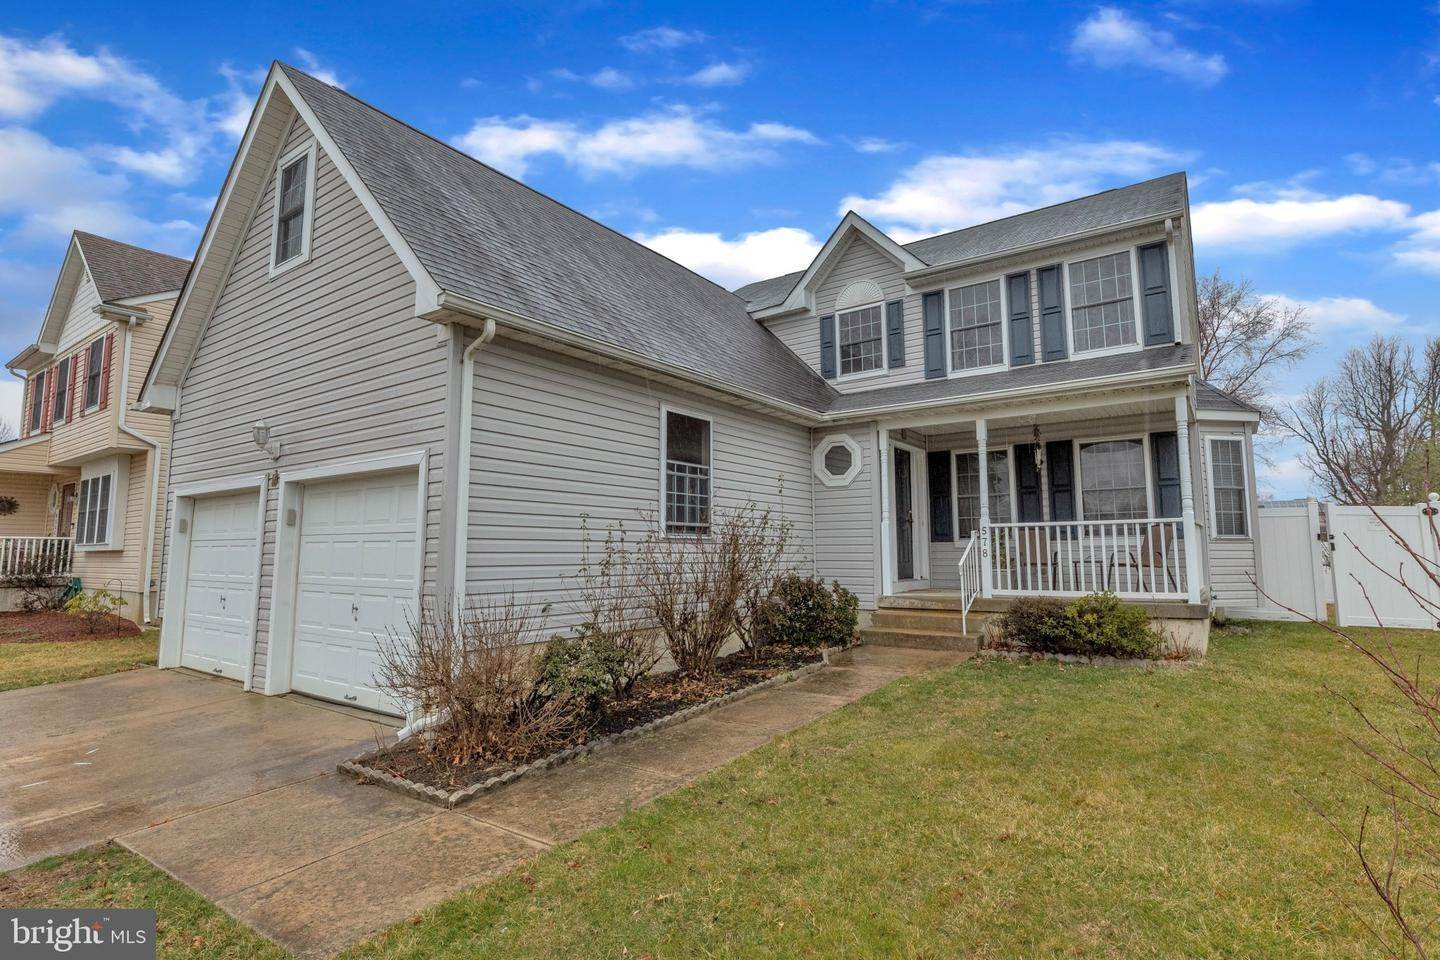 Detached House for Sale at 578 MAIN Street Cherry Hill, New Jersey 08002 United States